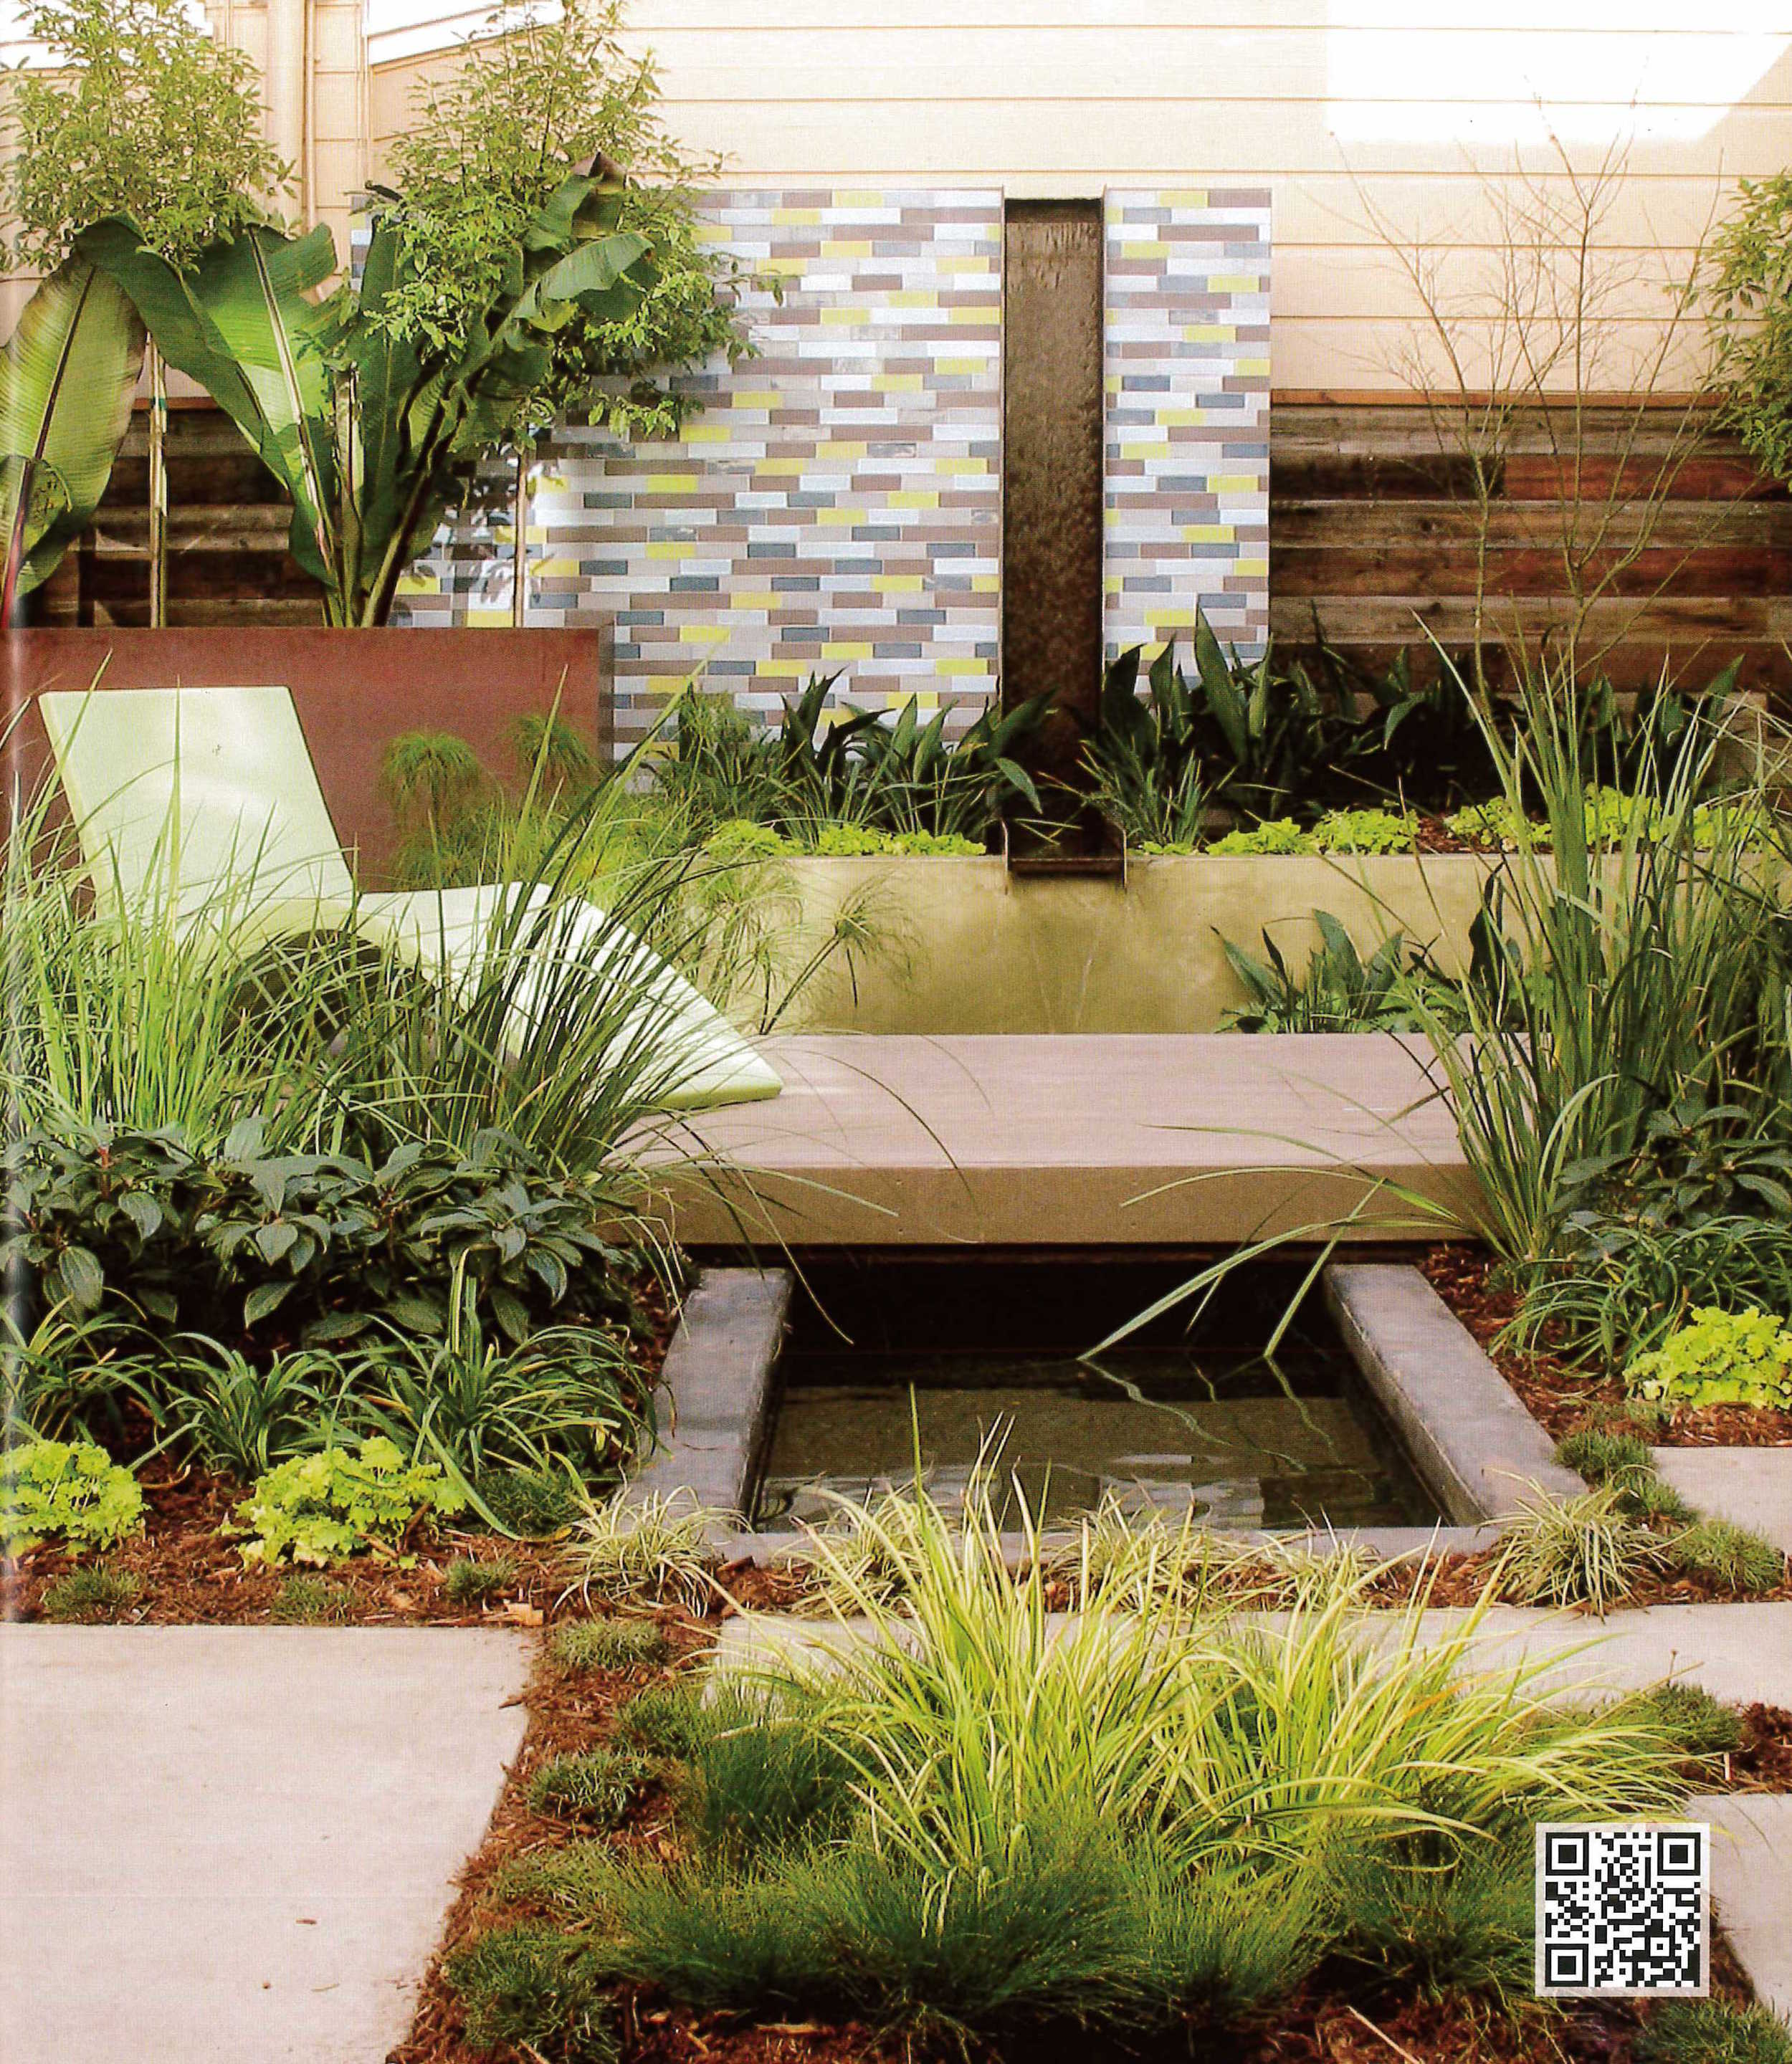 c972f-garden-within-walls_pg08.jpg